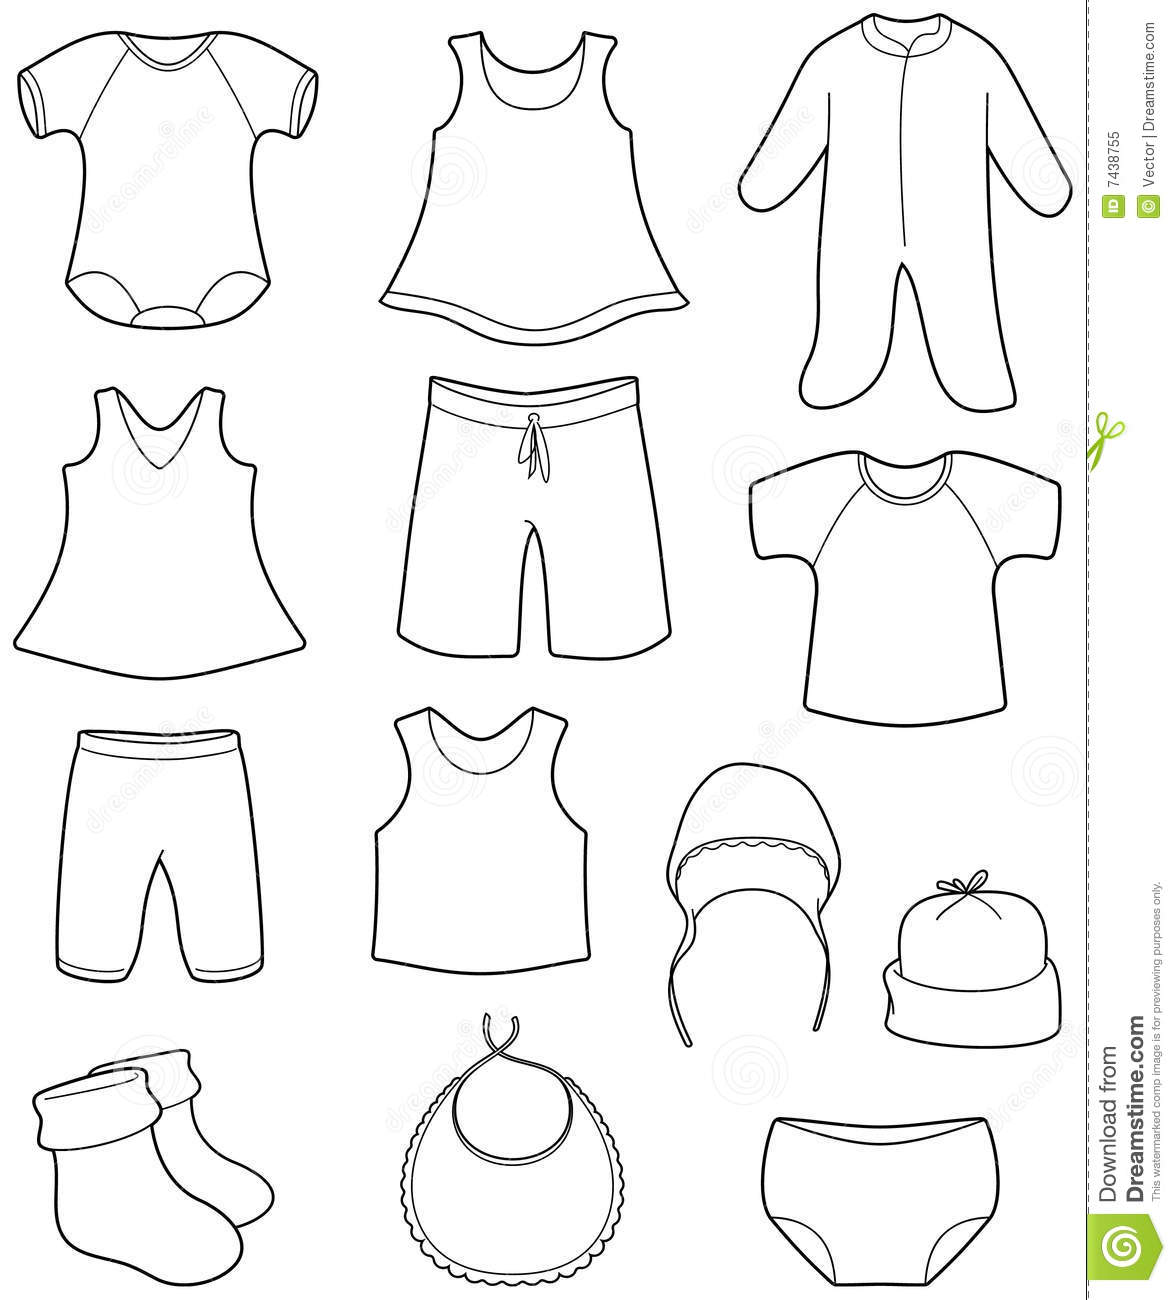 Onesie Outline Clipart - Clipart Suggest